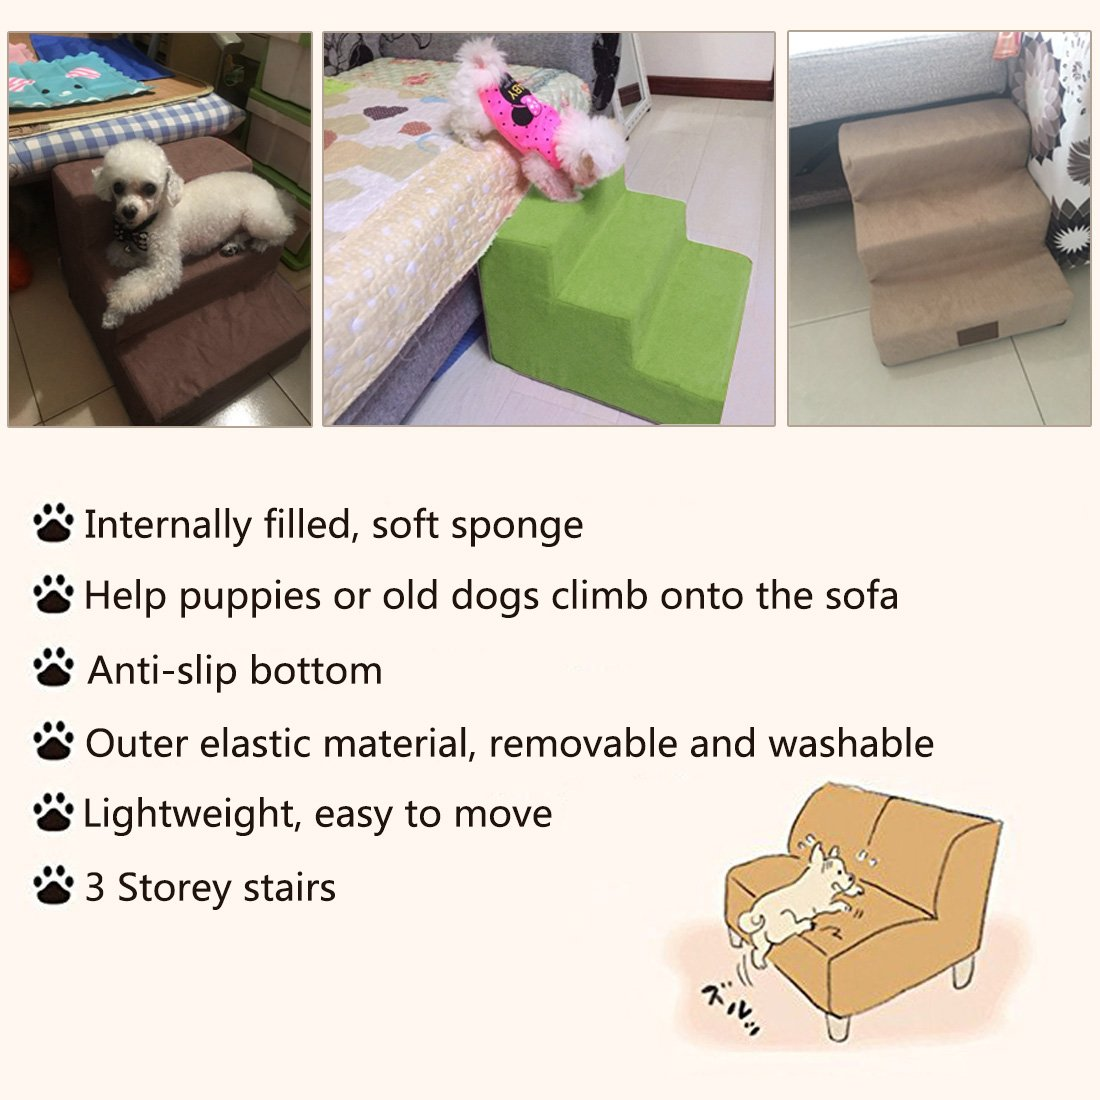 YUENA Care 3-Step Pet Stairs Ramp Breathable Washable Cover Dog Cat Puppy Activity Ladder Supplies Grey